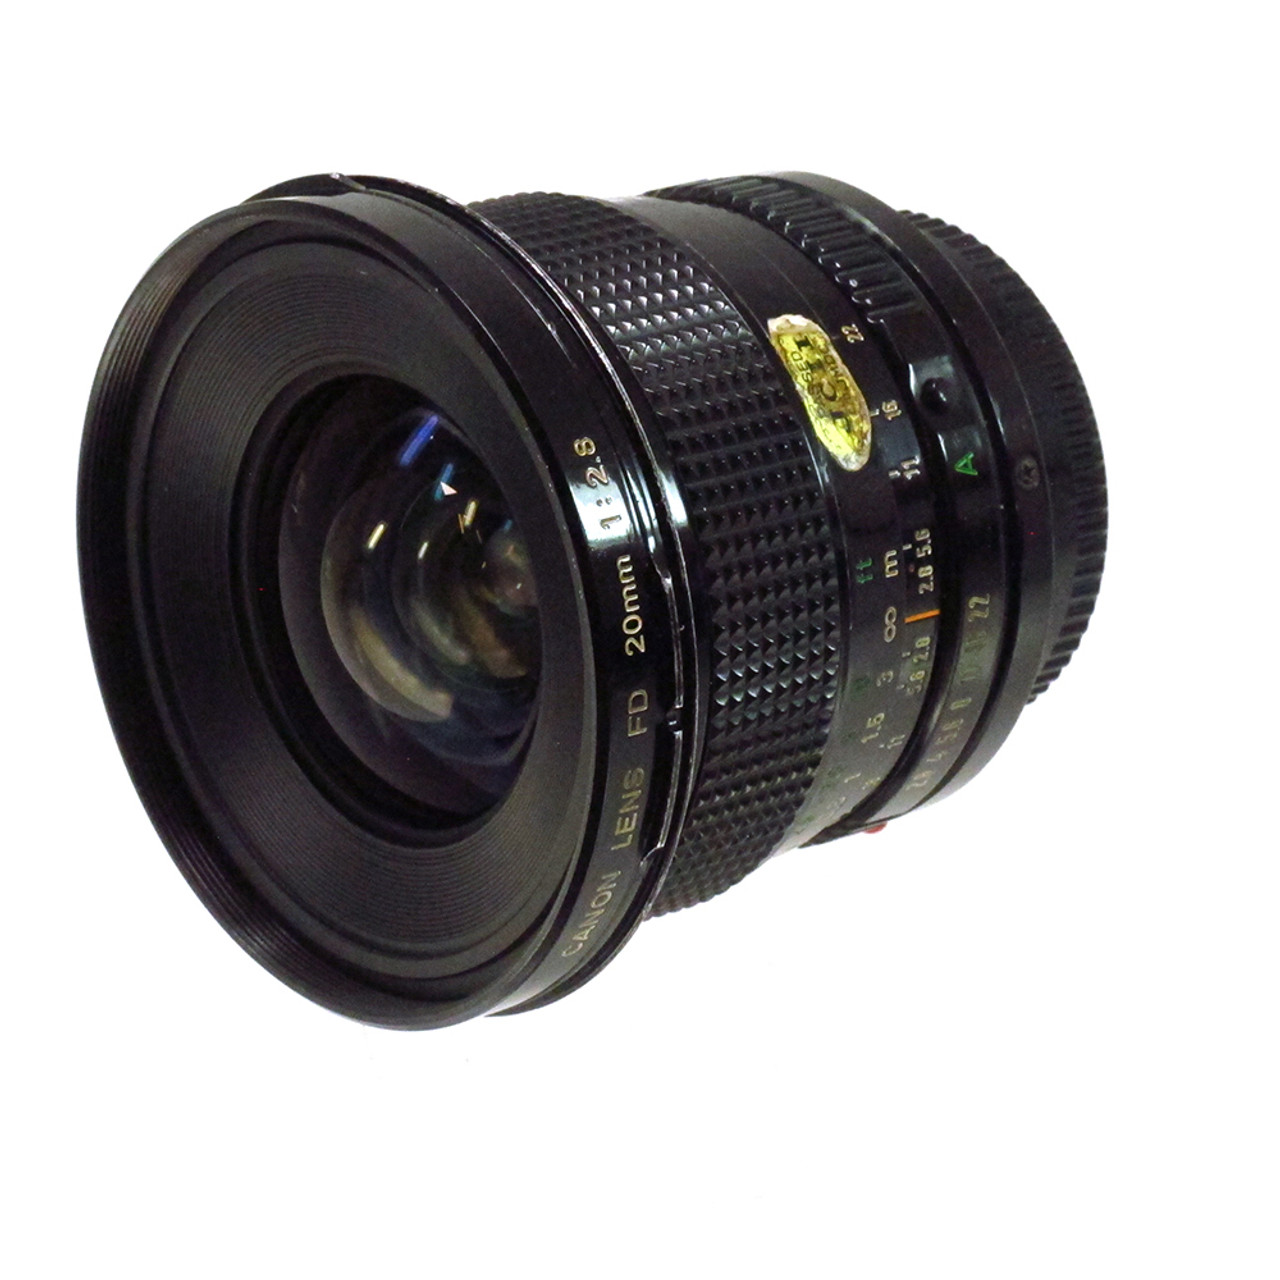 USED CANON FD 20MM F2.8